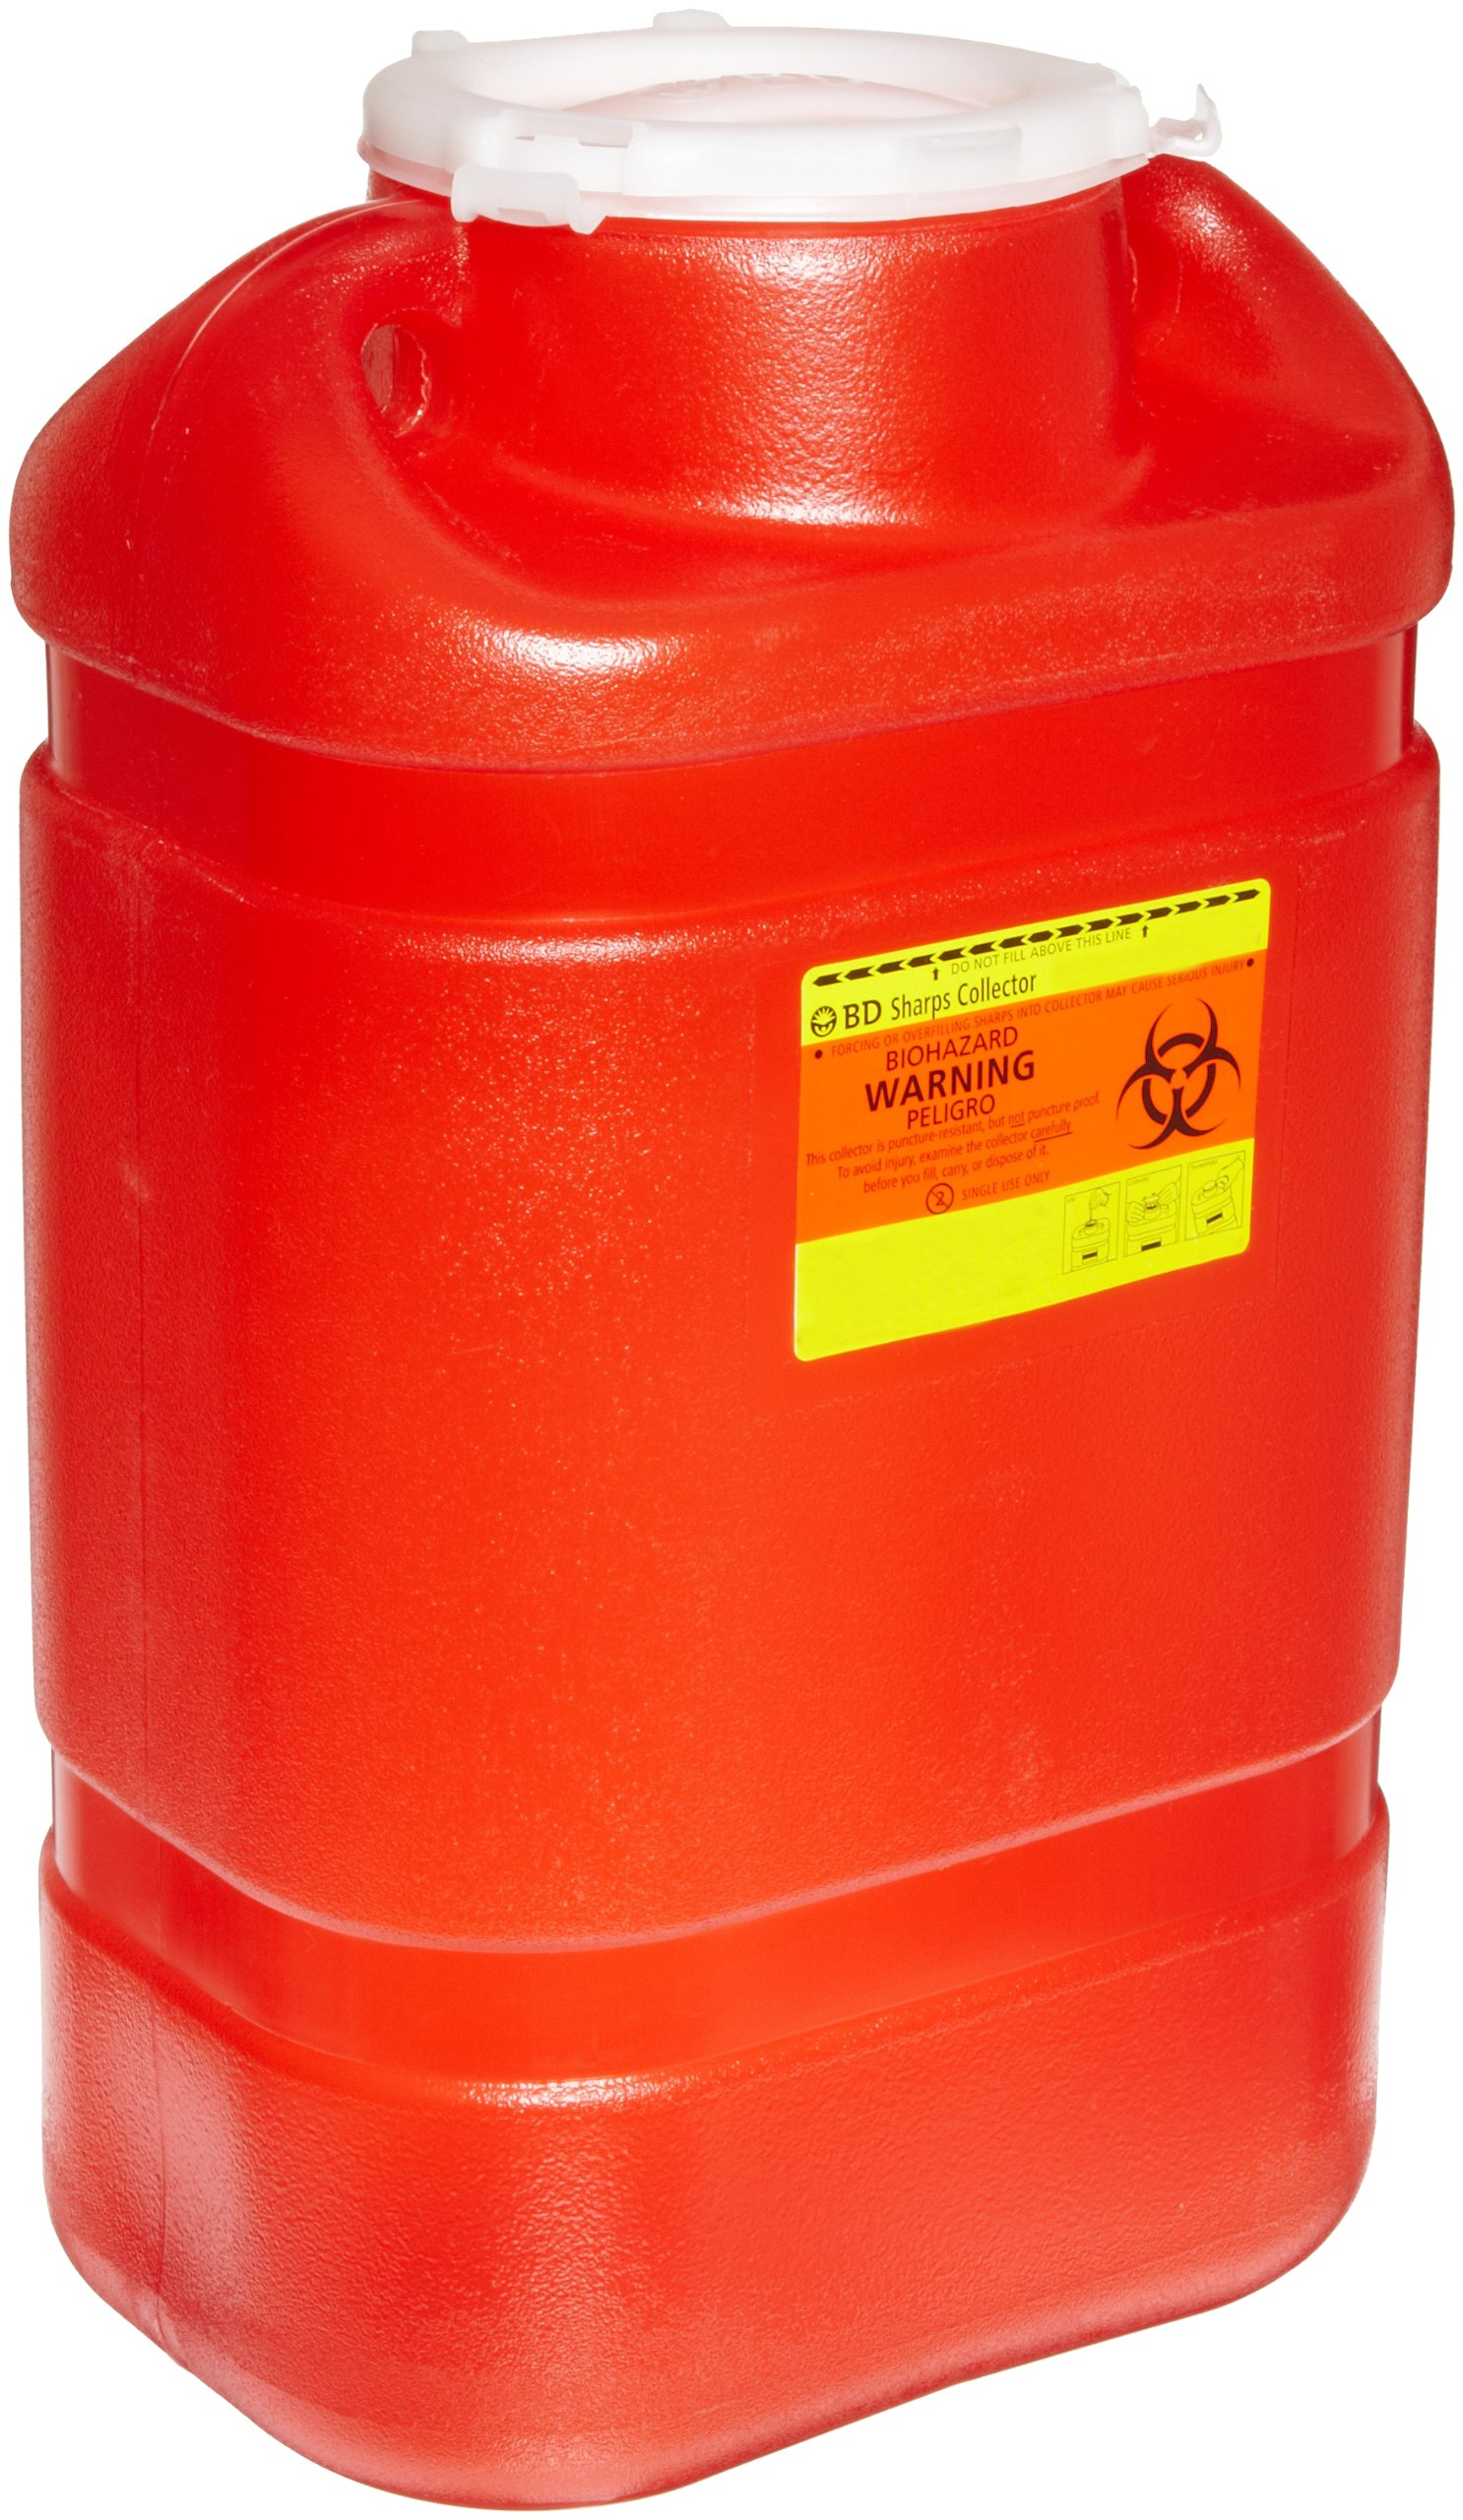 BD 305477 Multi-Use One-Piece Sharps Collector with Large Funnel, 10-1/2'' Width x 18'' Height x 7-1/2'' Depth, 5 Gallon Capacity, Red (Case of 8)